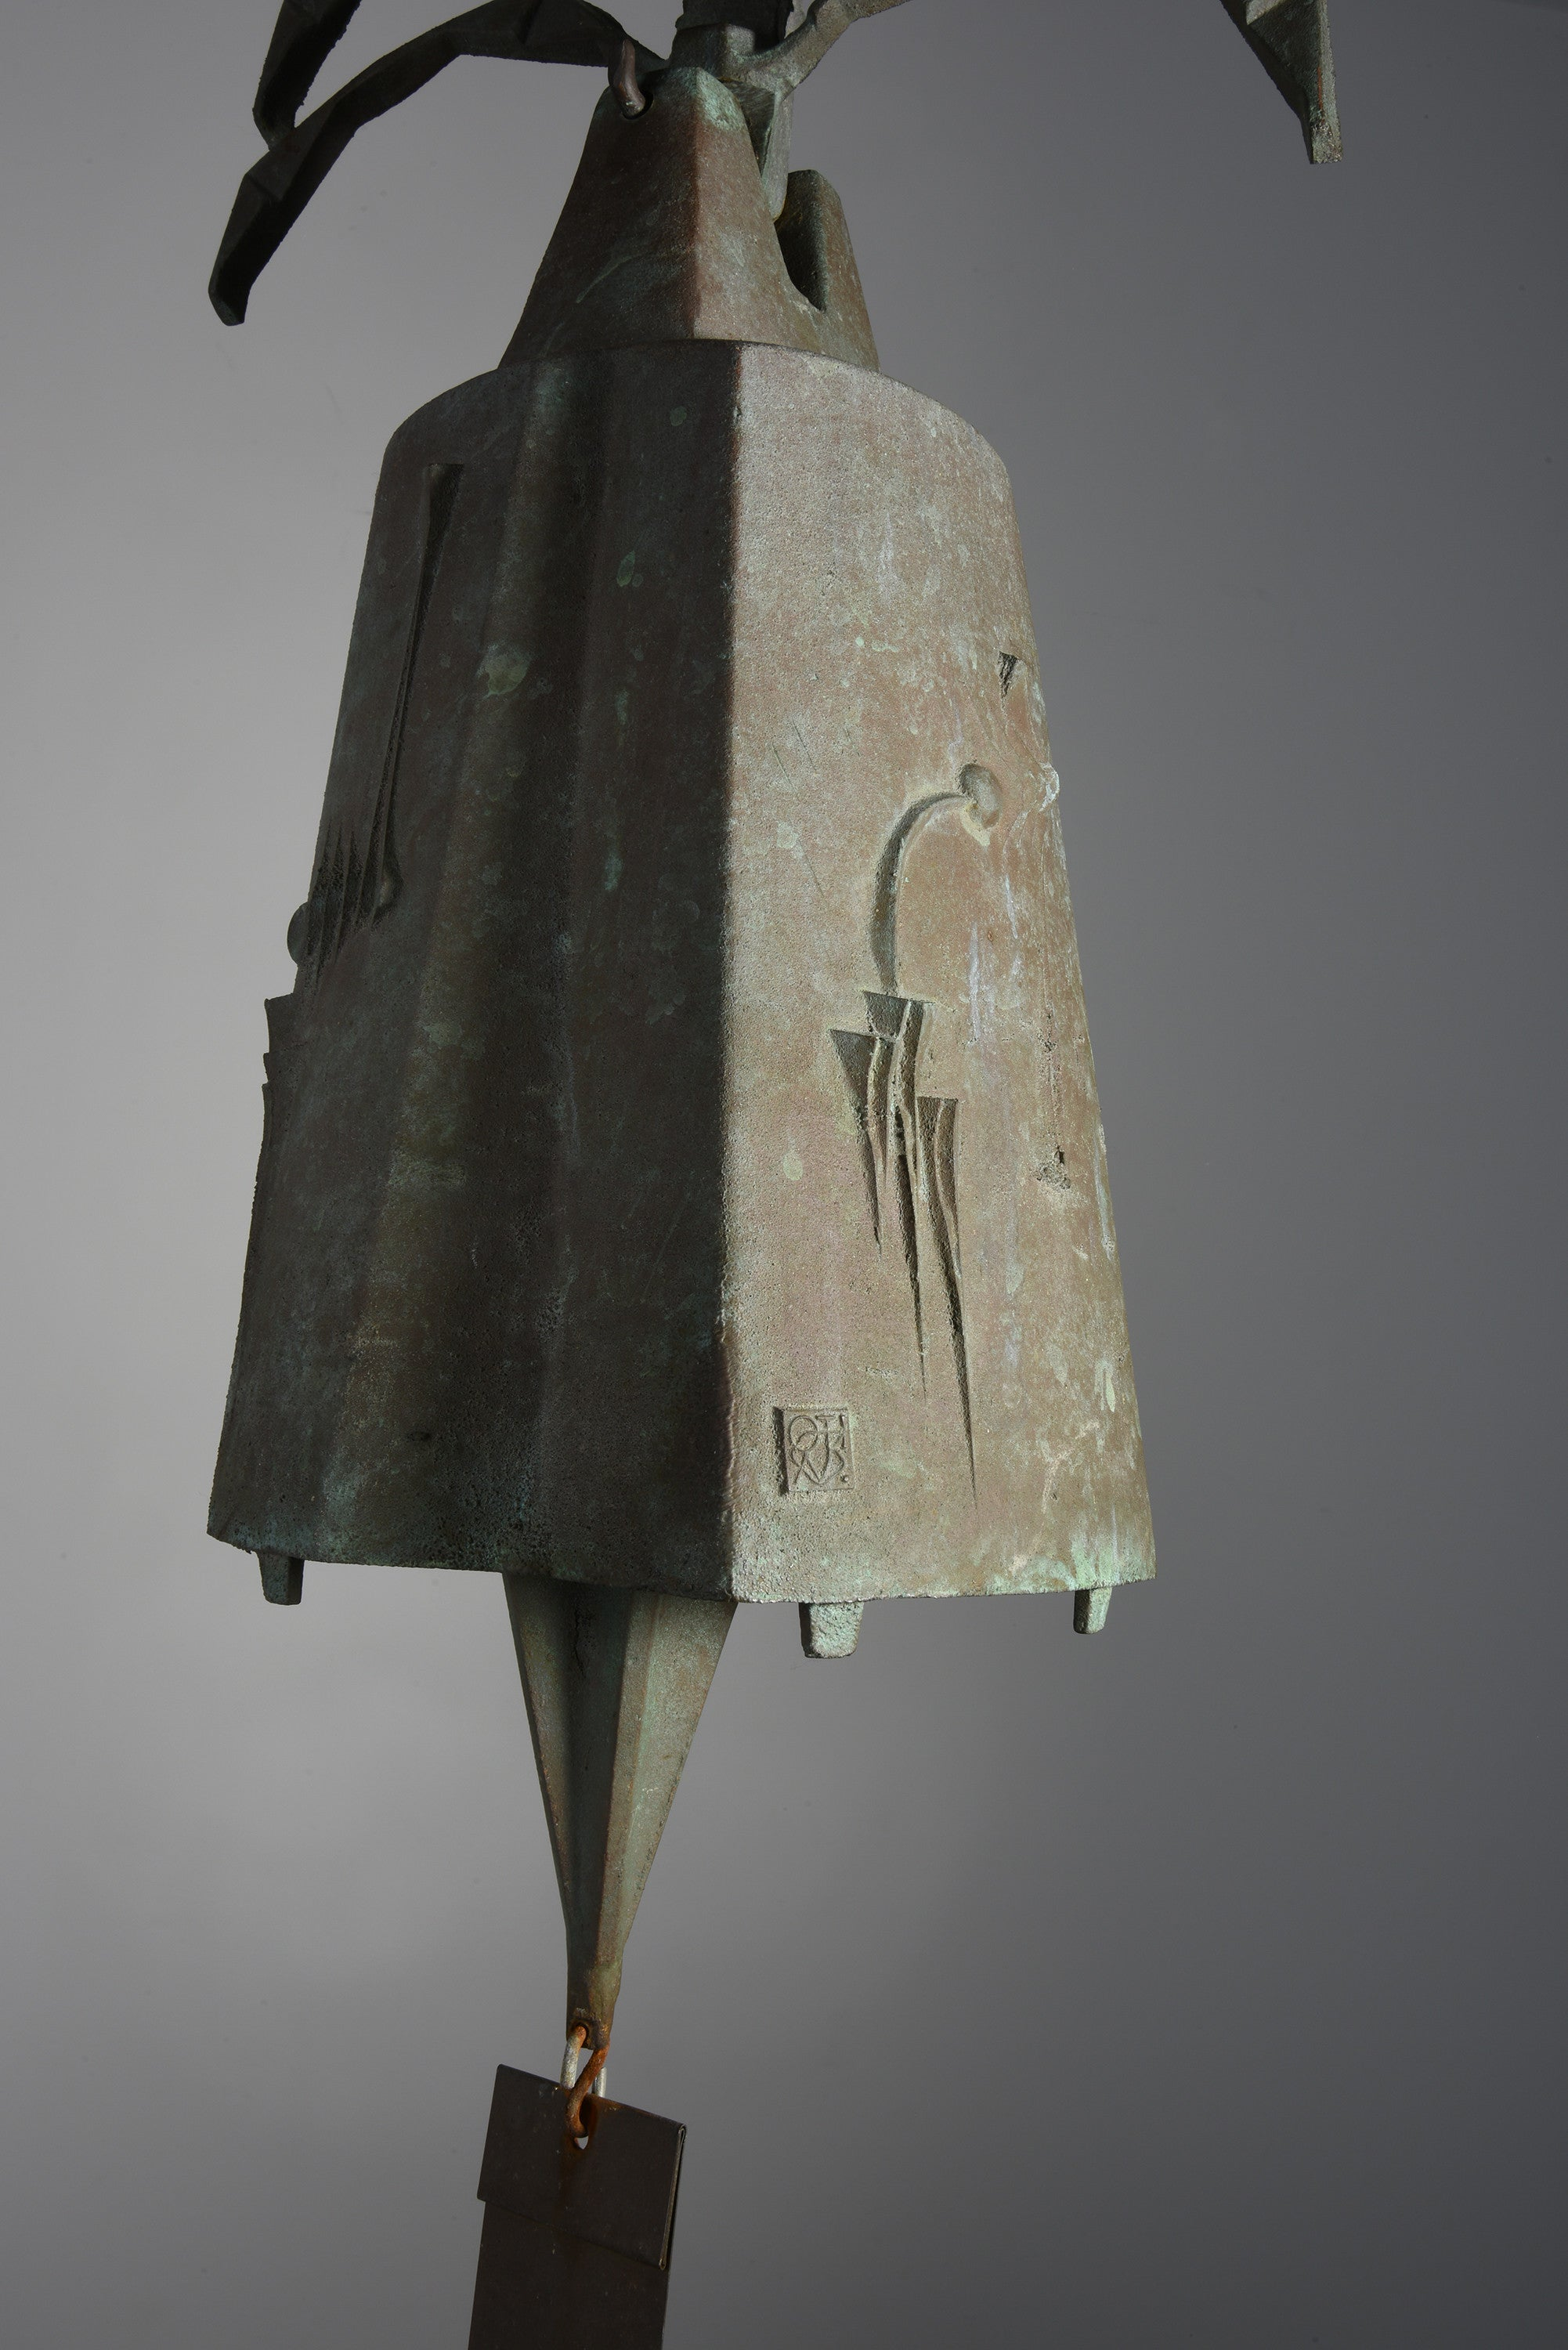 Large Paolo Soleri Hanging Bell in Cast Bronze, 1970s - The Exchange Int